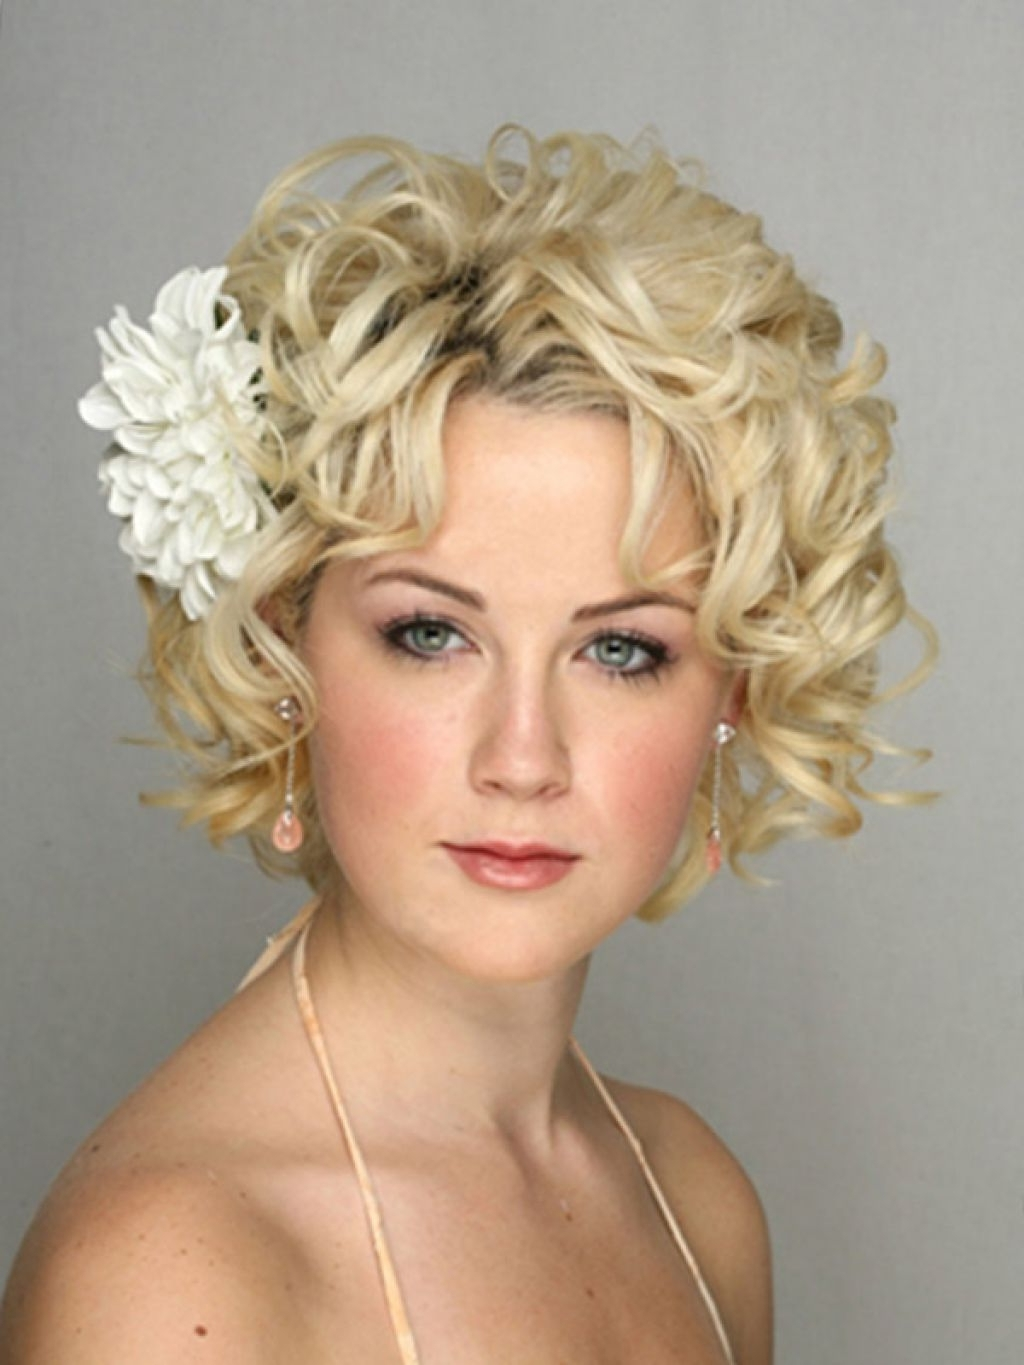 Short Hair Hairstyle For Wedding Wedding Guest Hairstyles For Medium With Most Recent Wedding Hairstyles For Short To Mid Length Hair (View 13 of 15)